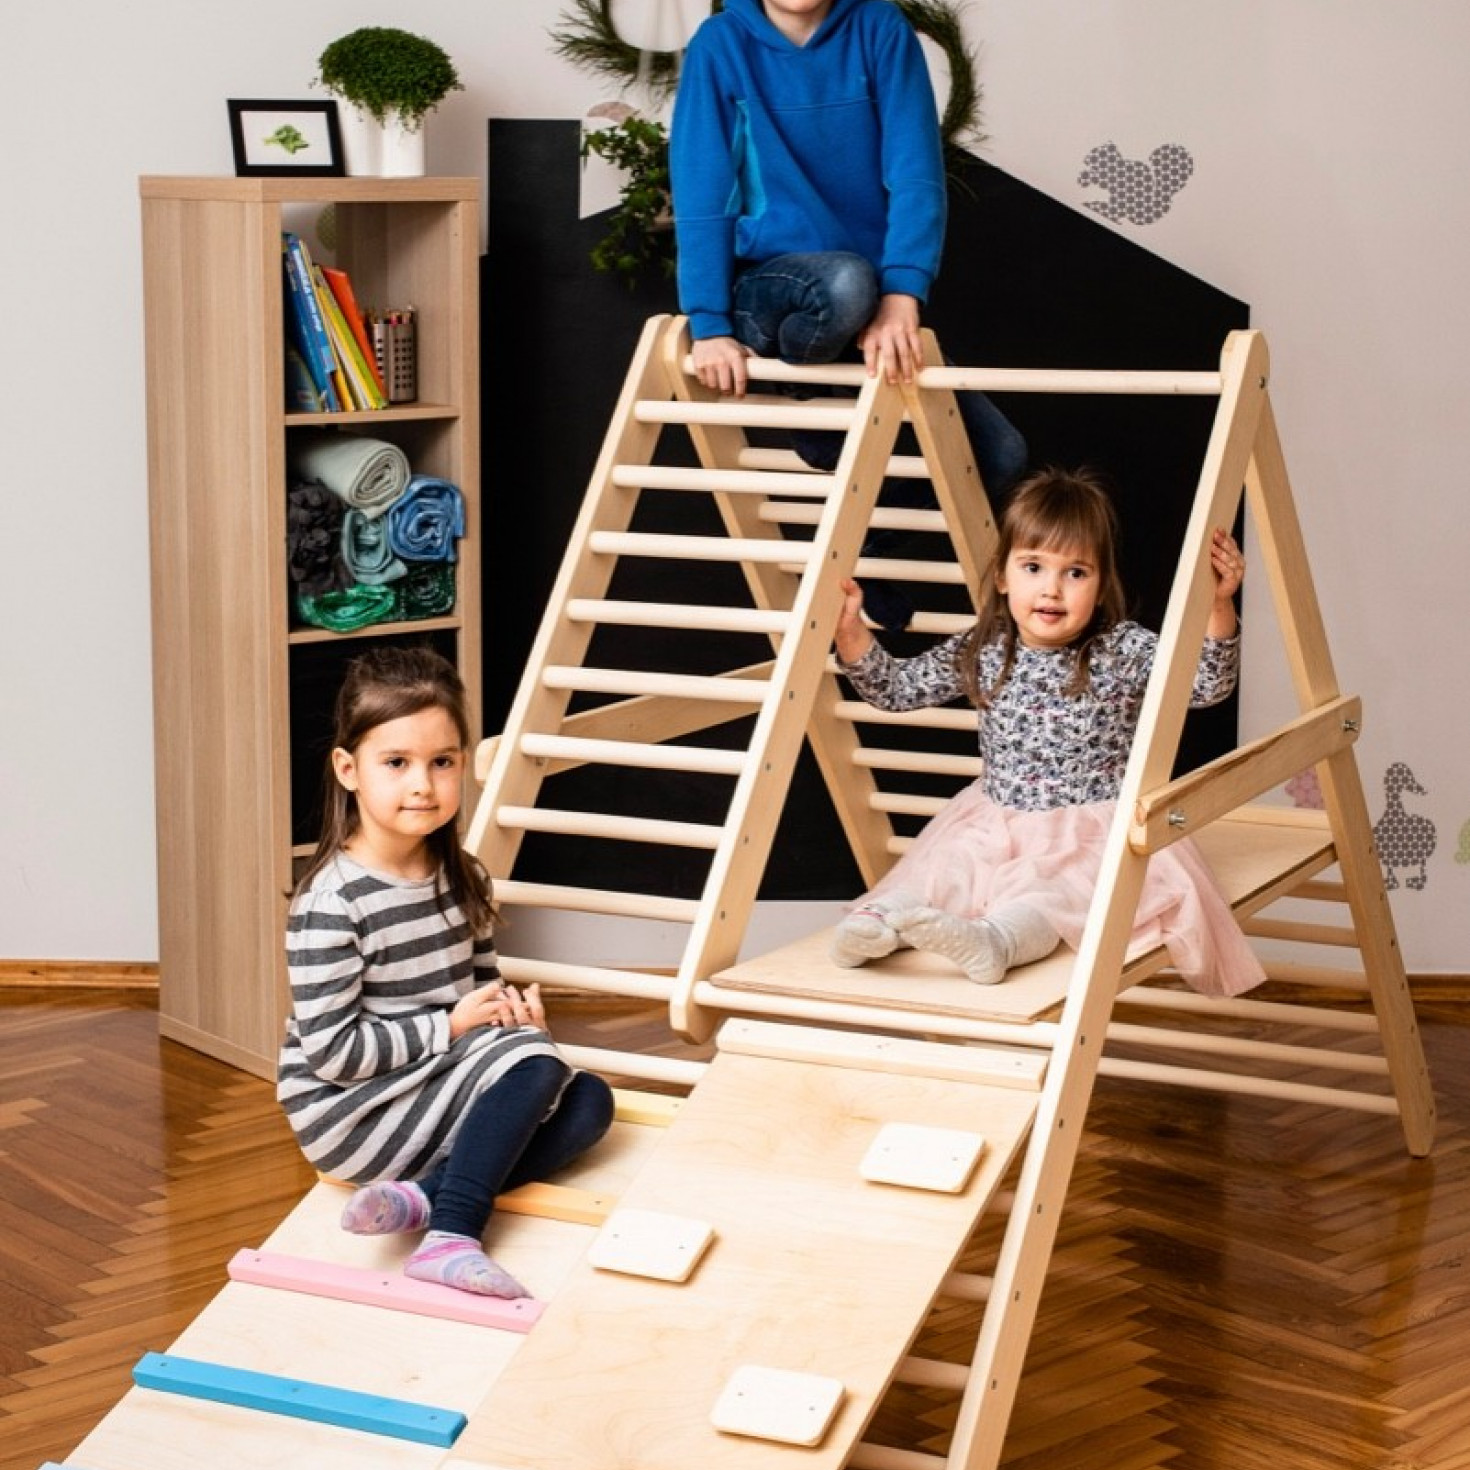 Pre-schoolers playing on a climbing ladder